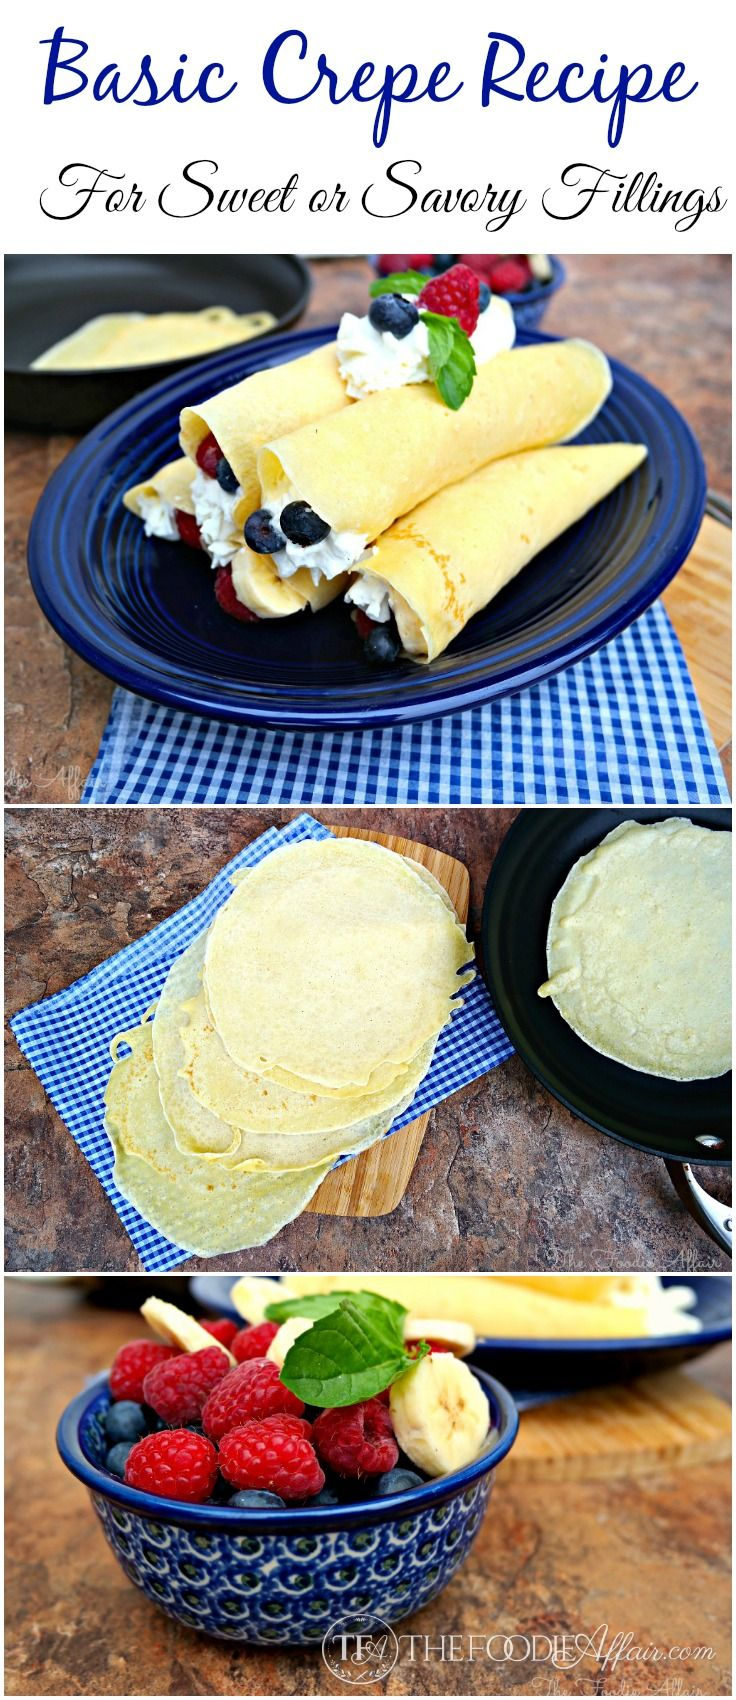 This Basic Crepe Recipe is simple to make and can be filled with sweet or savory ingredients! The Foodie Affair #crepes #recipe #brunch